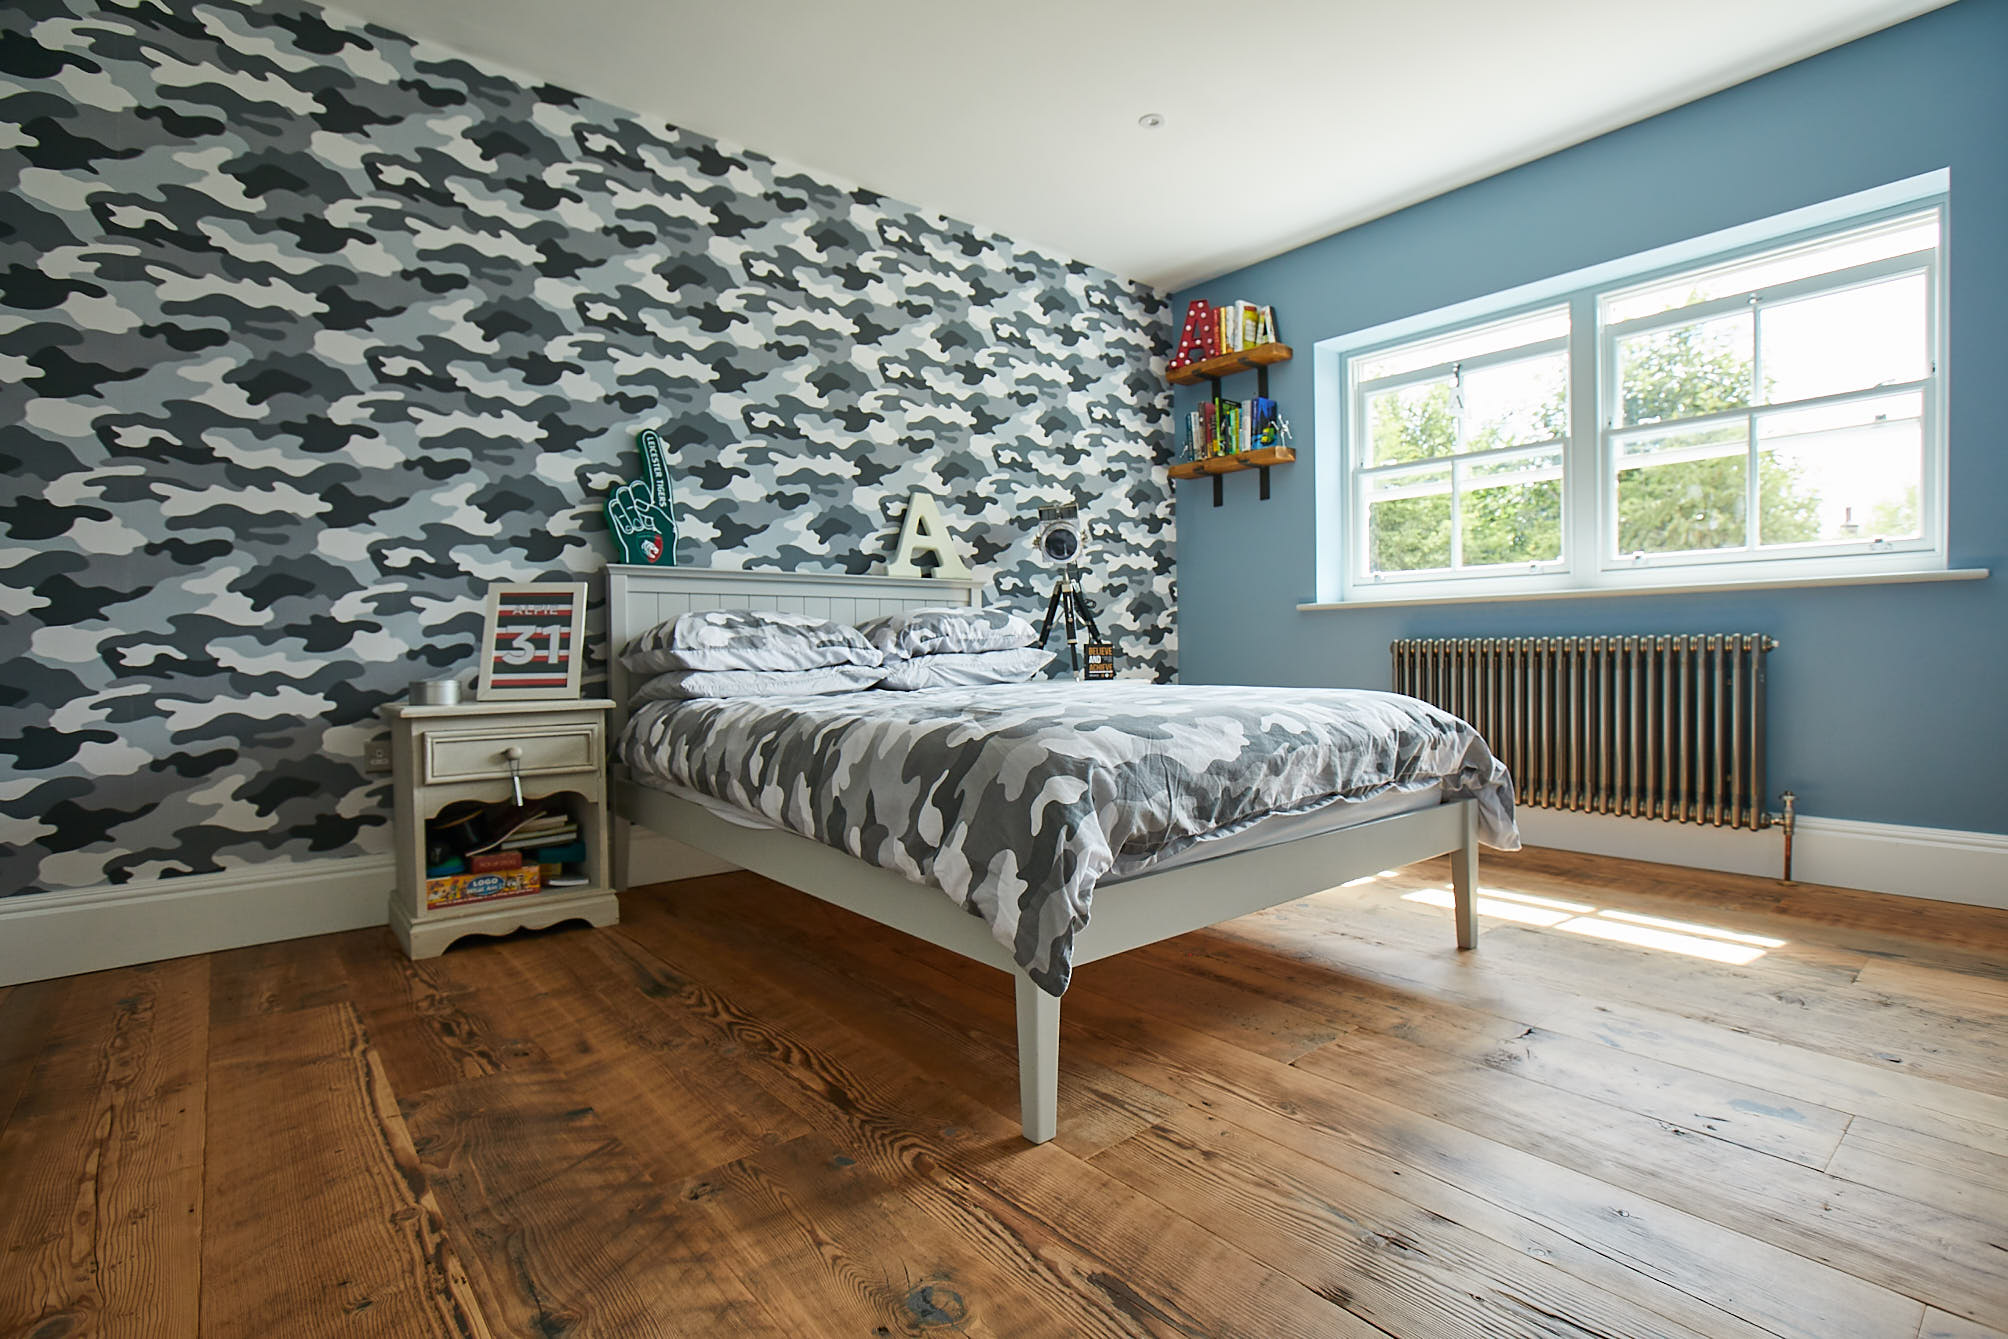 Camouflage wallpaper and rustic flooring in boys bedroom